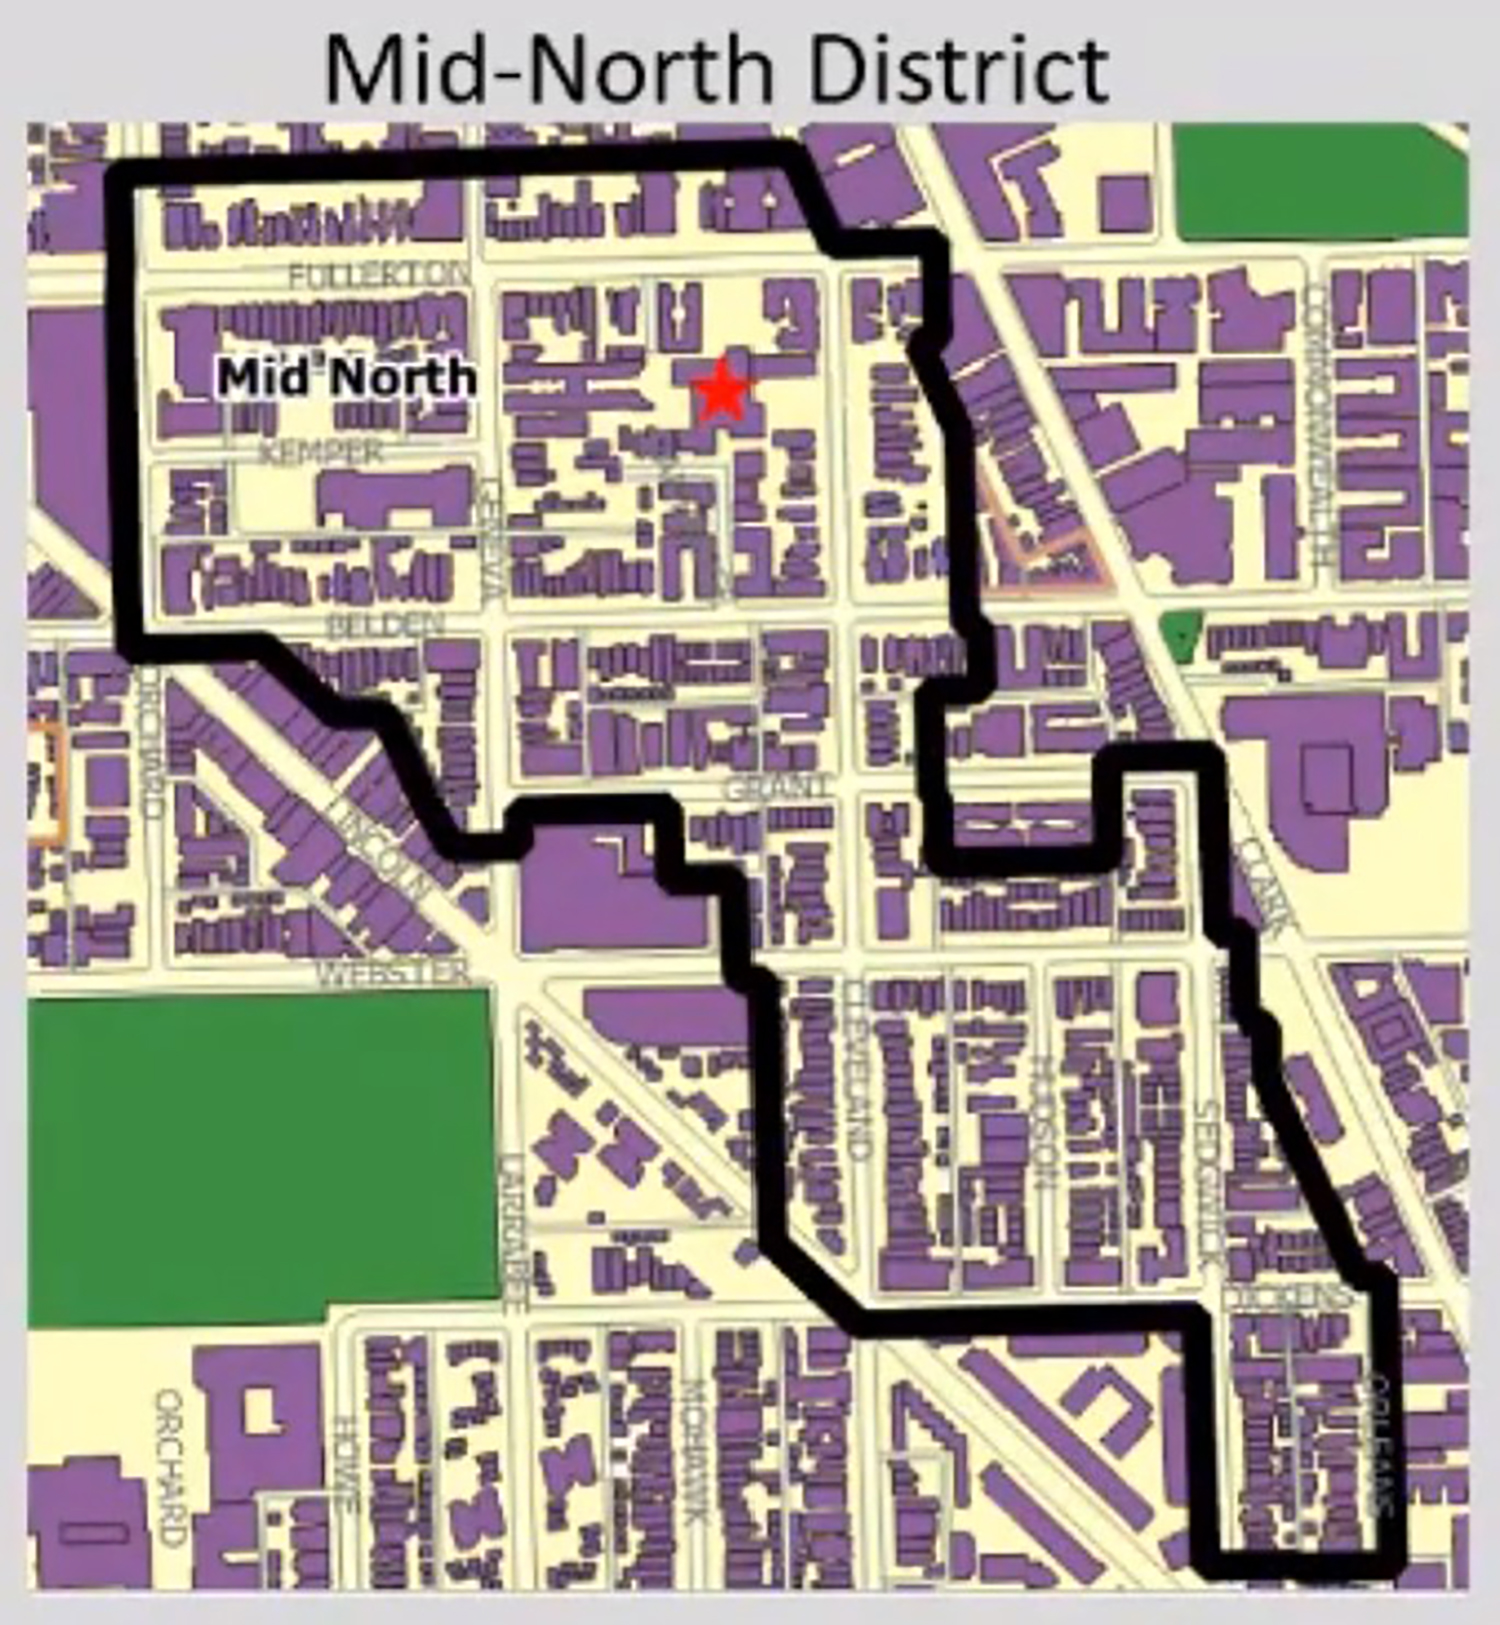 Map of Mid-North Historic District. Image by CCL